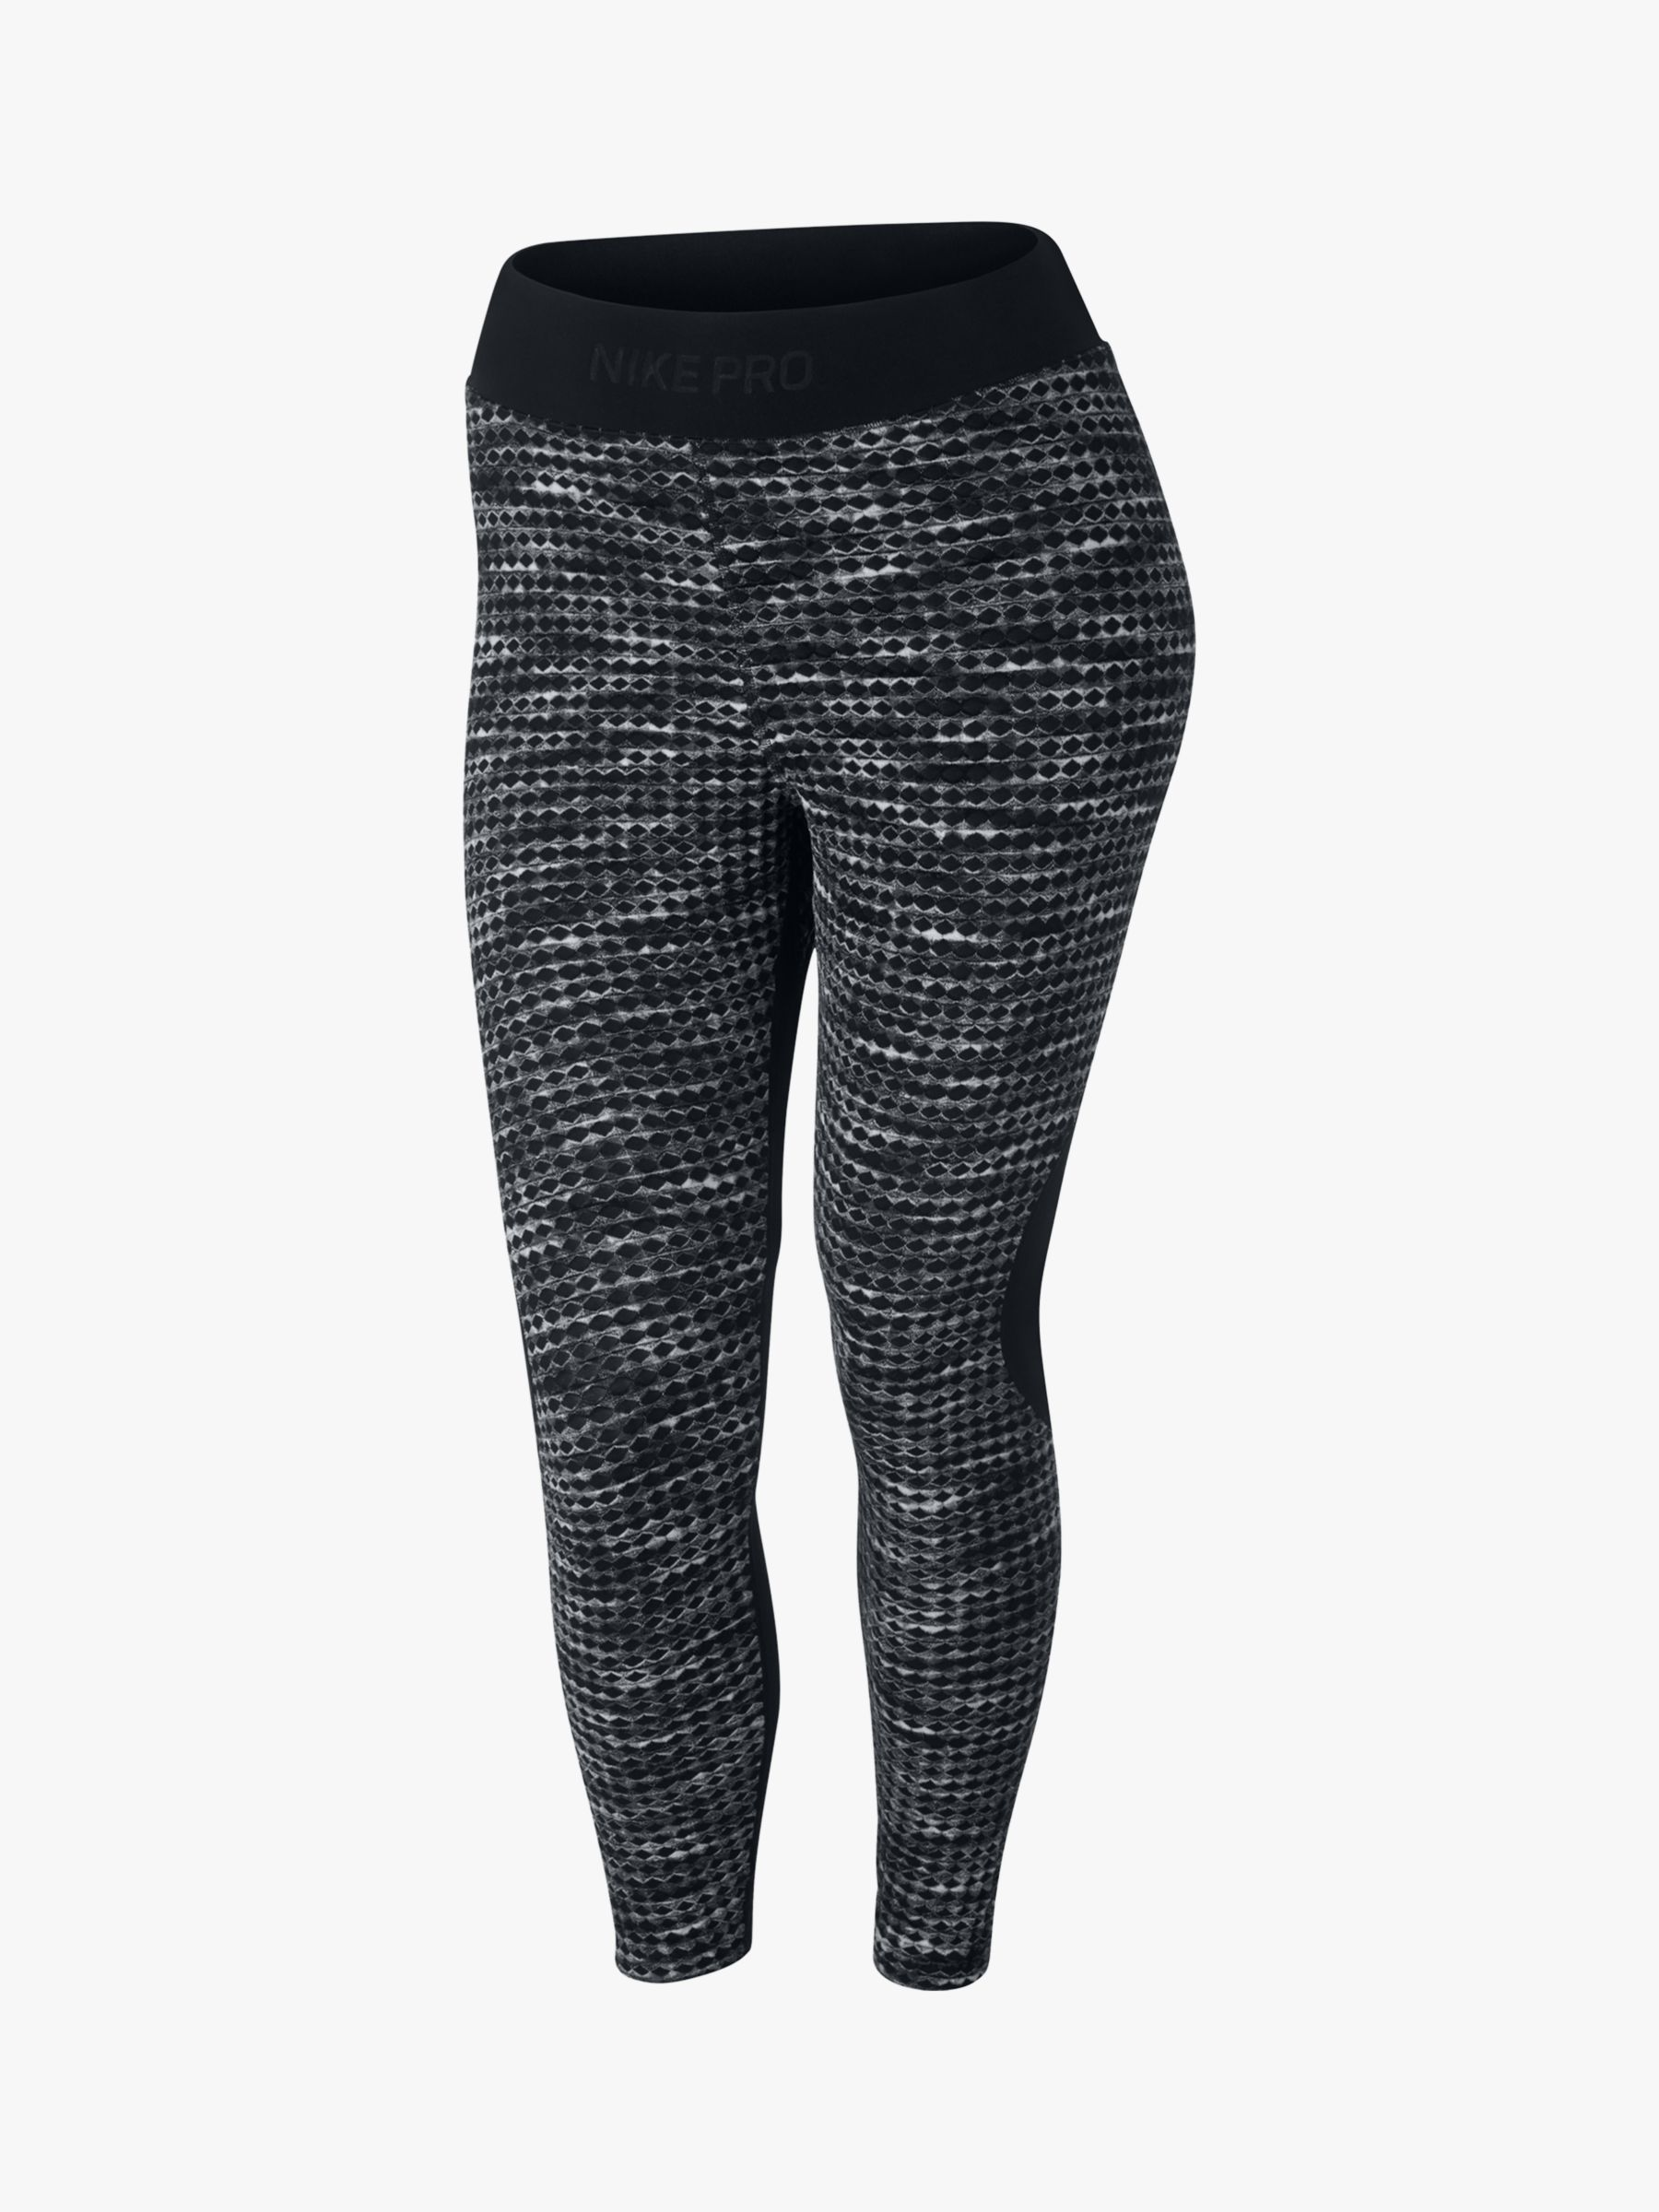 Ultramoderne Nike Pro HyperWarm Printed Crop Tights, Black at John Lewis & Partners WU-76